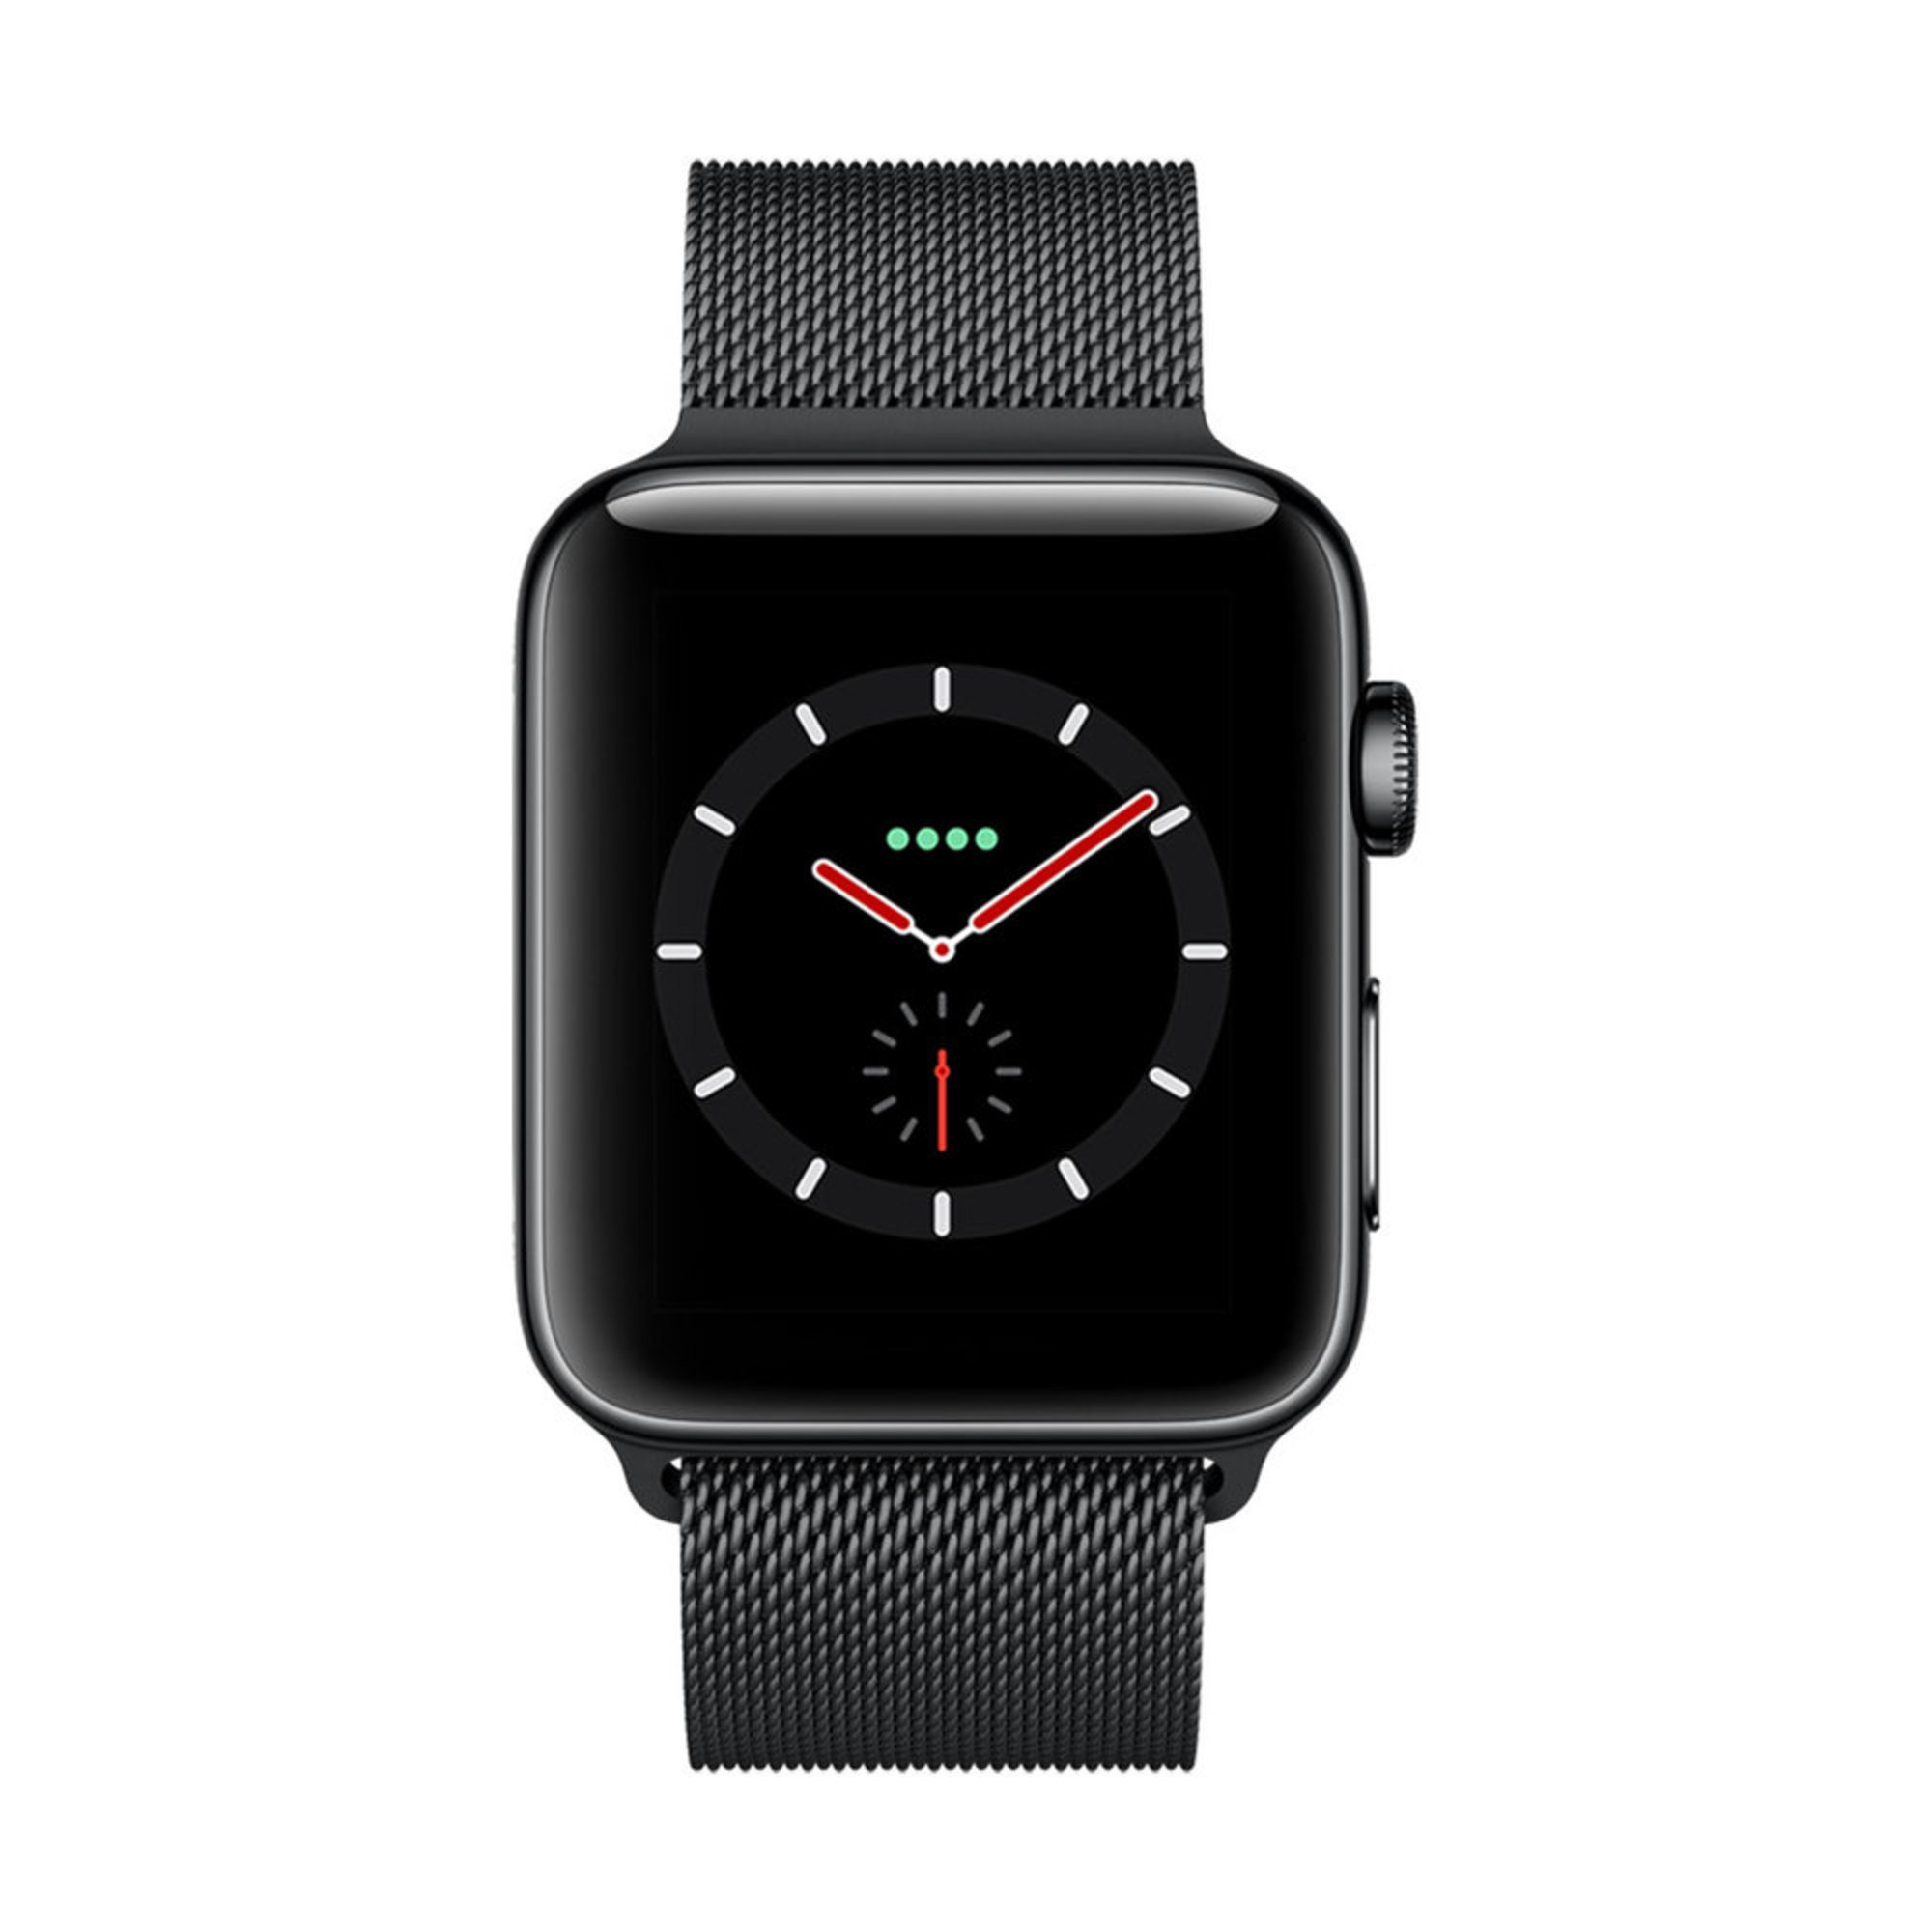 Apple Watch Series 3 Gps Cellular Stainless Steel Case With Milanese